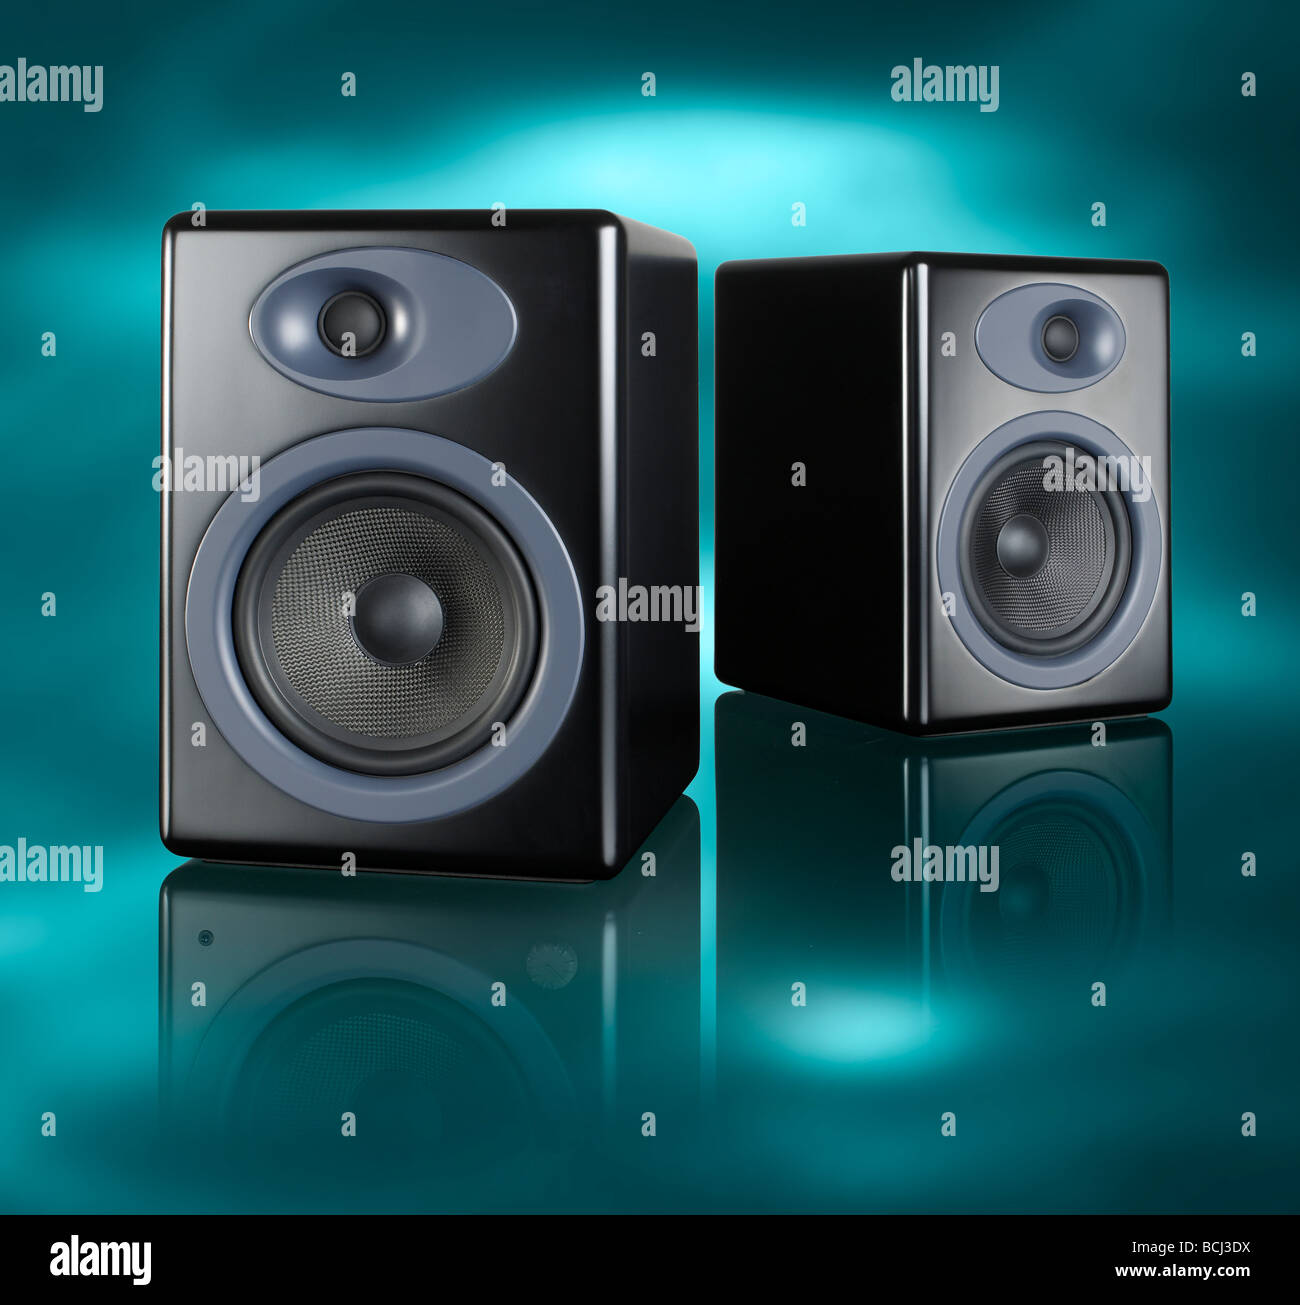 Home Audio Loud speakers square - Stock Image